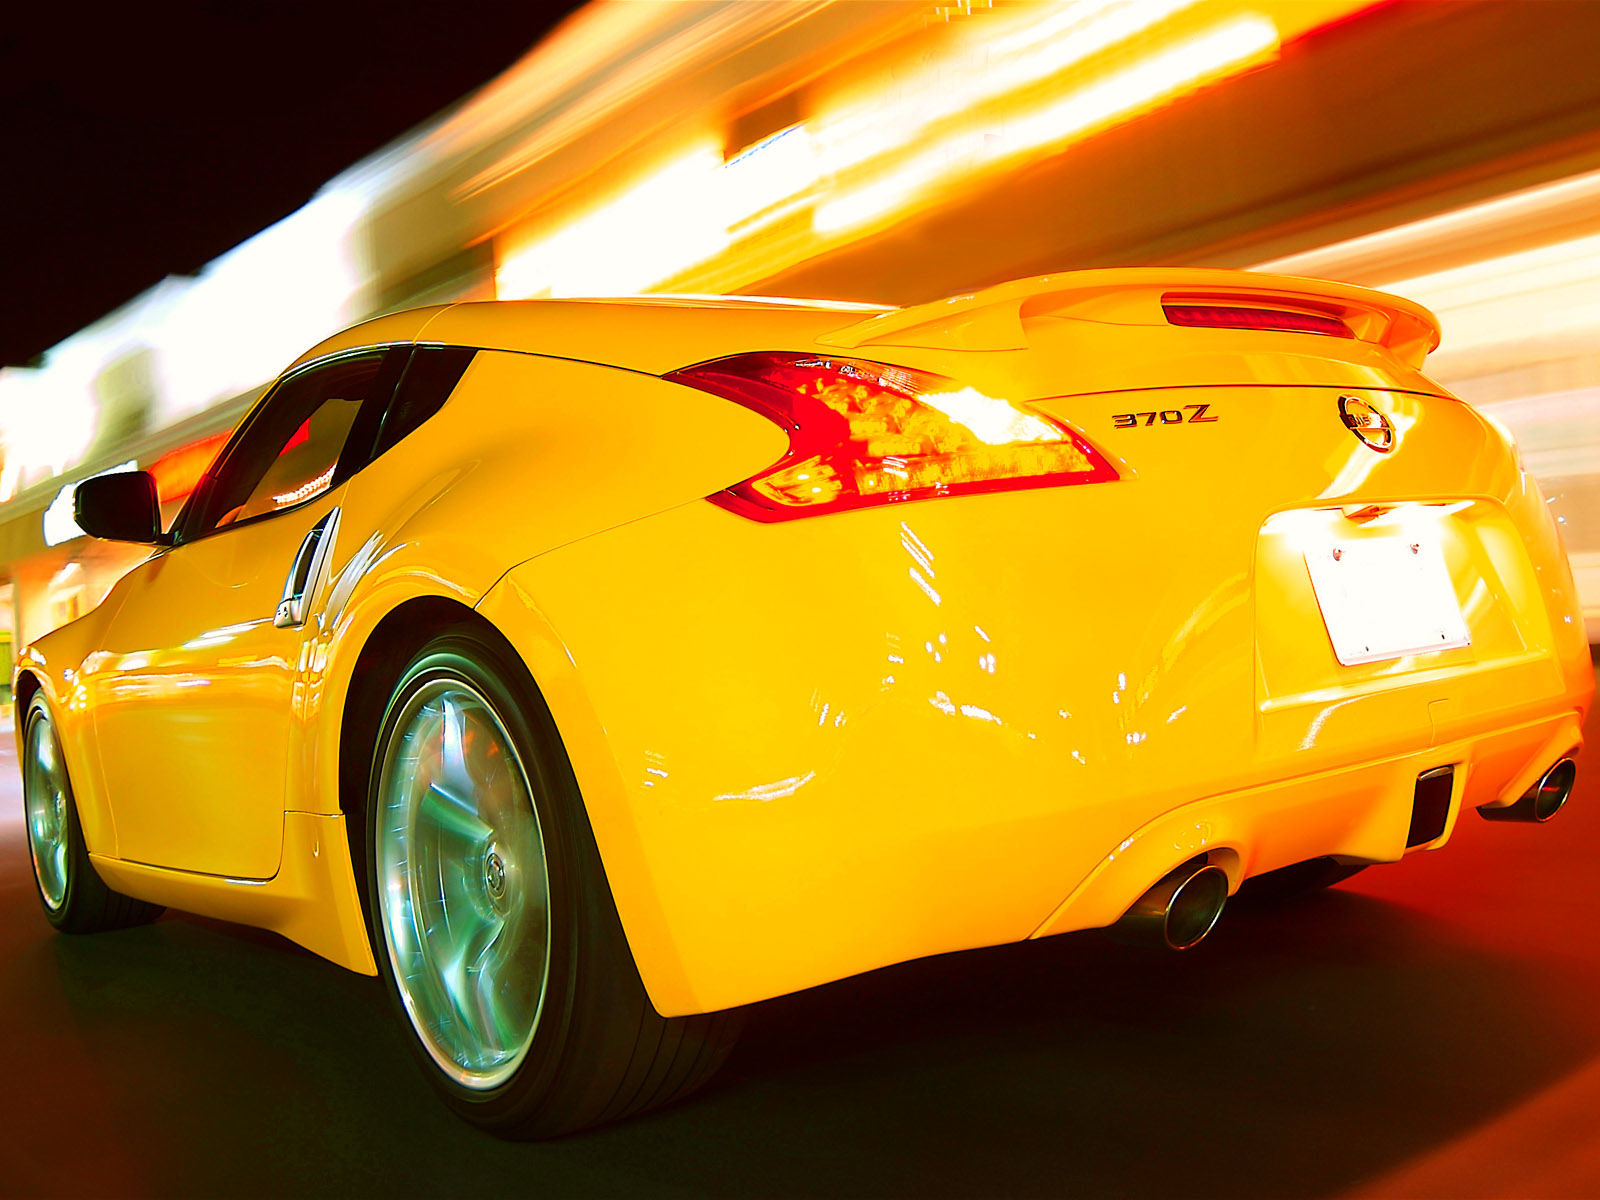 Nissan Of Mobile >> 66 Nissan 370Z HD Wallpapers | Background Images - Wallpaper Abyss